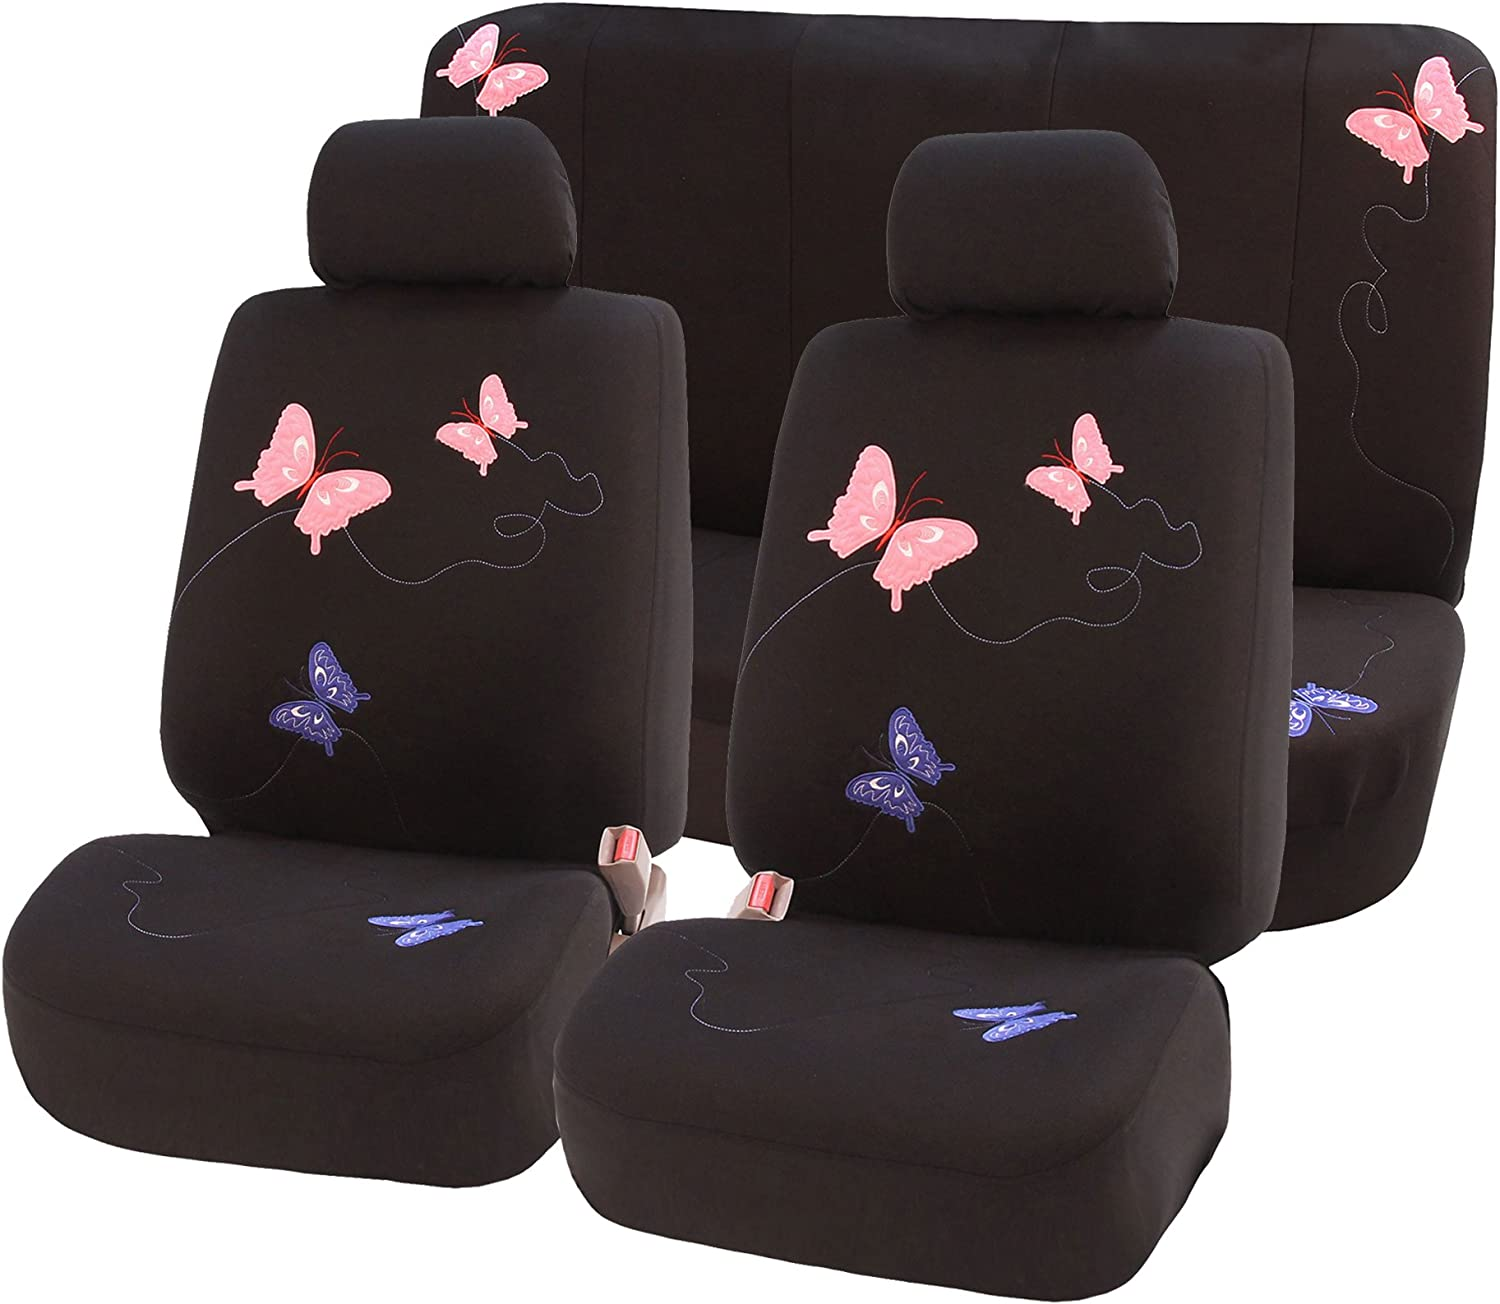 New Orleans Mall FH Topics on TV Group FB055112 Universal Full Set Car with Black Covers Seat